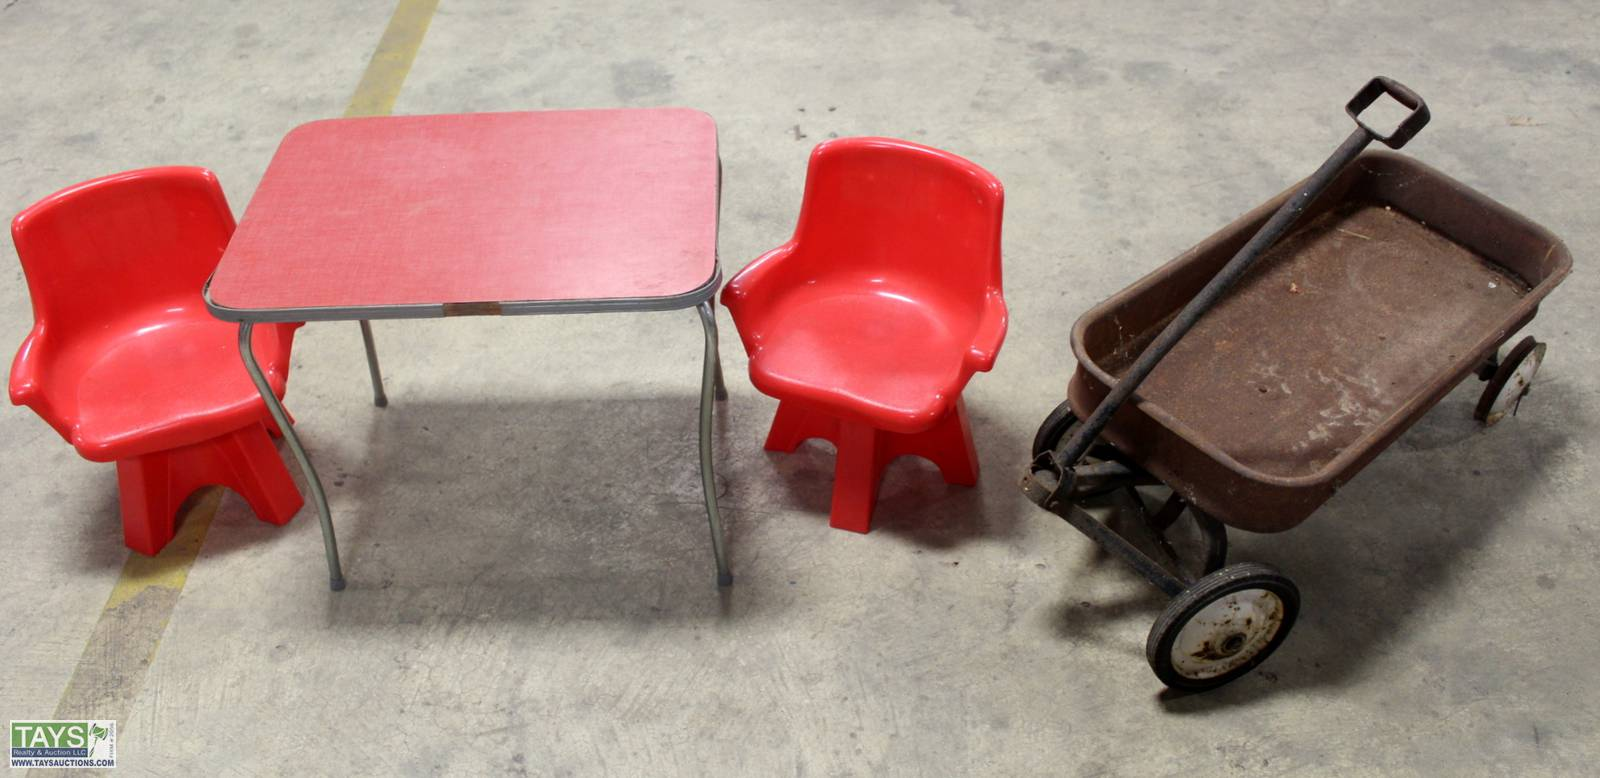 Tays Realty Auction Auction Online Absolute Auction Furniture Antiques Appliances Item Kid S Antique Metal Pull Wagon Kid S Table And Chairs